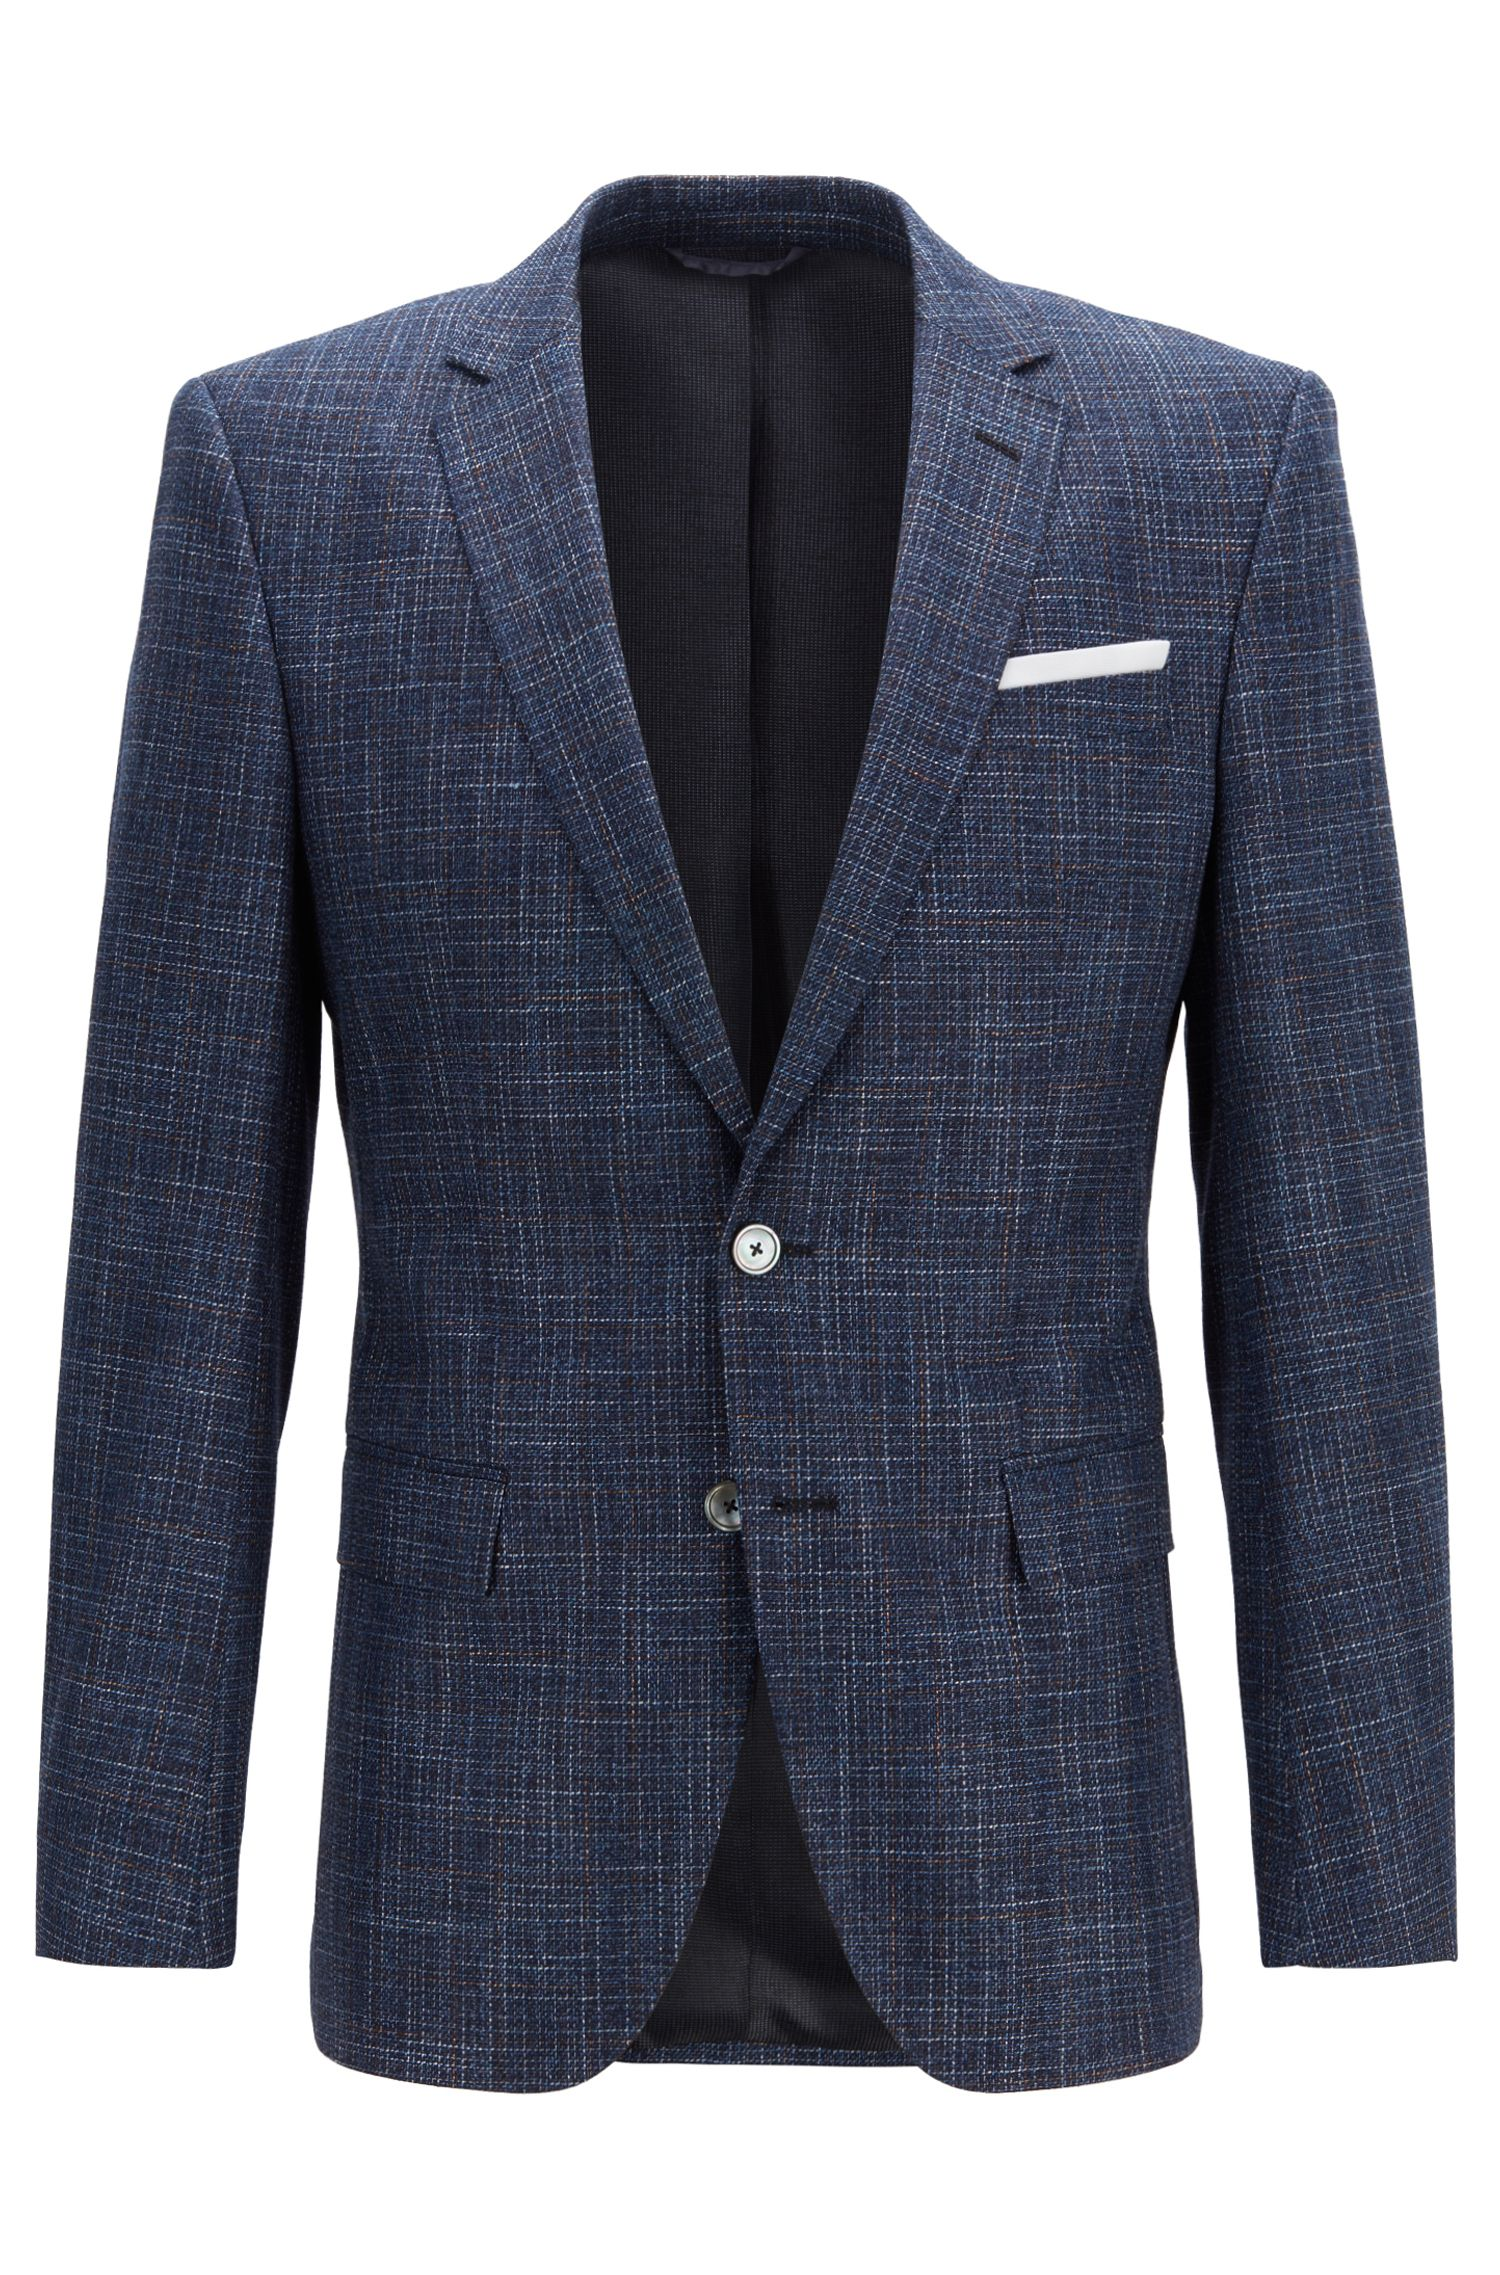 Slim-fit micro-patterned jacket with pocket square, Open Blue